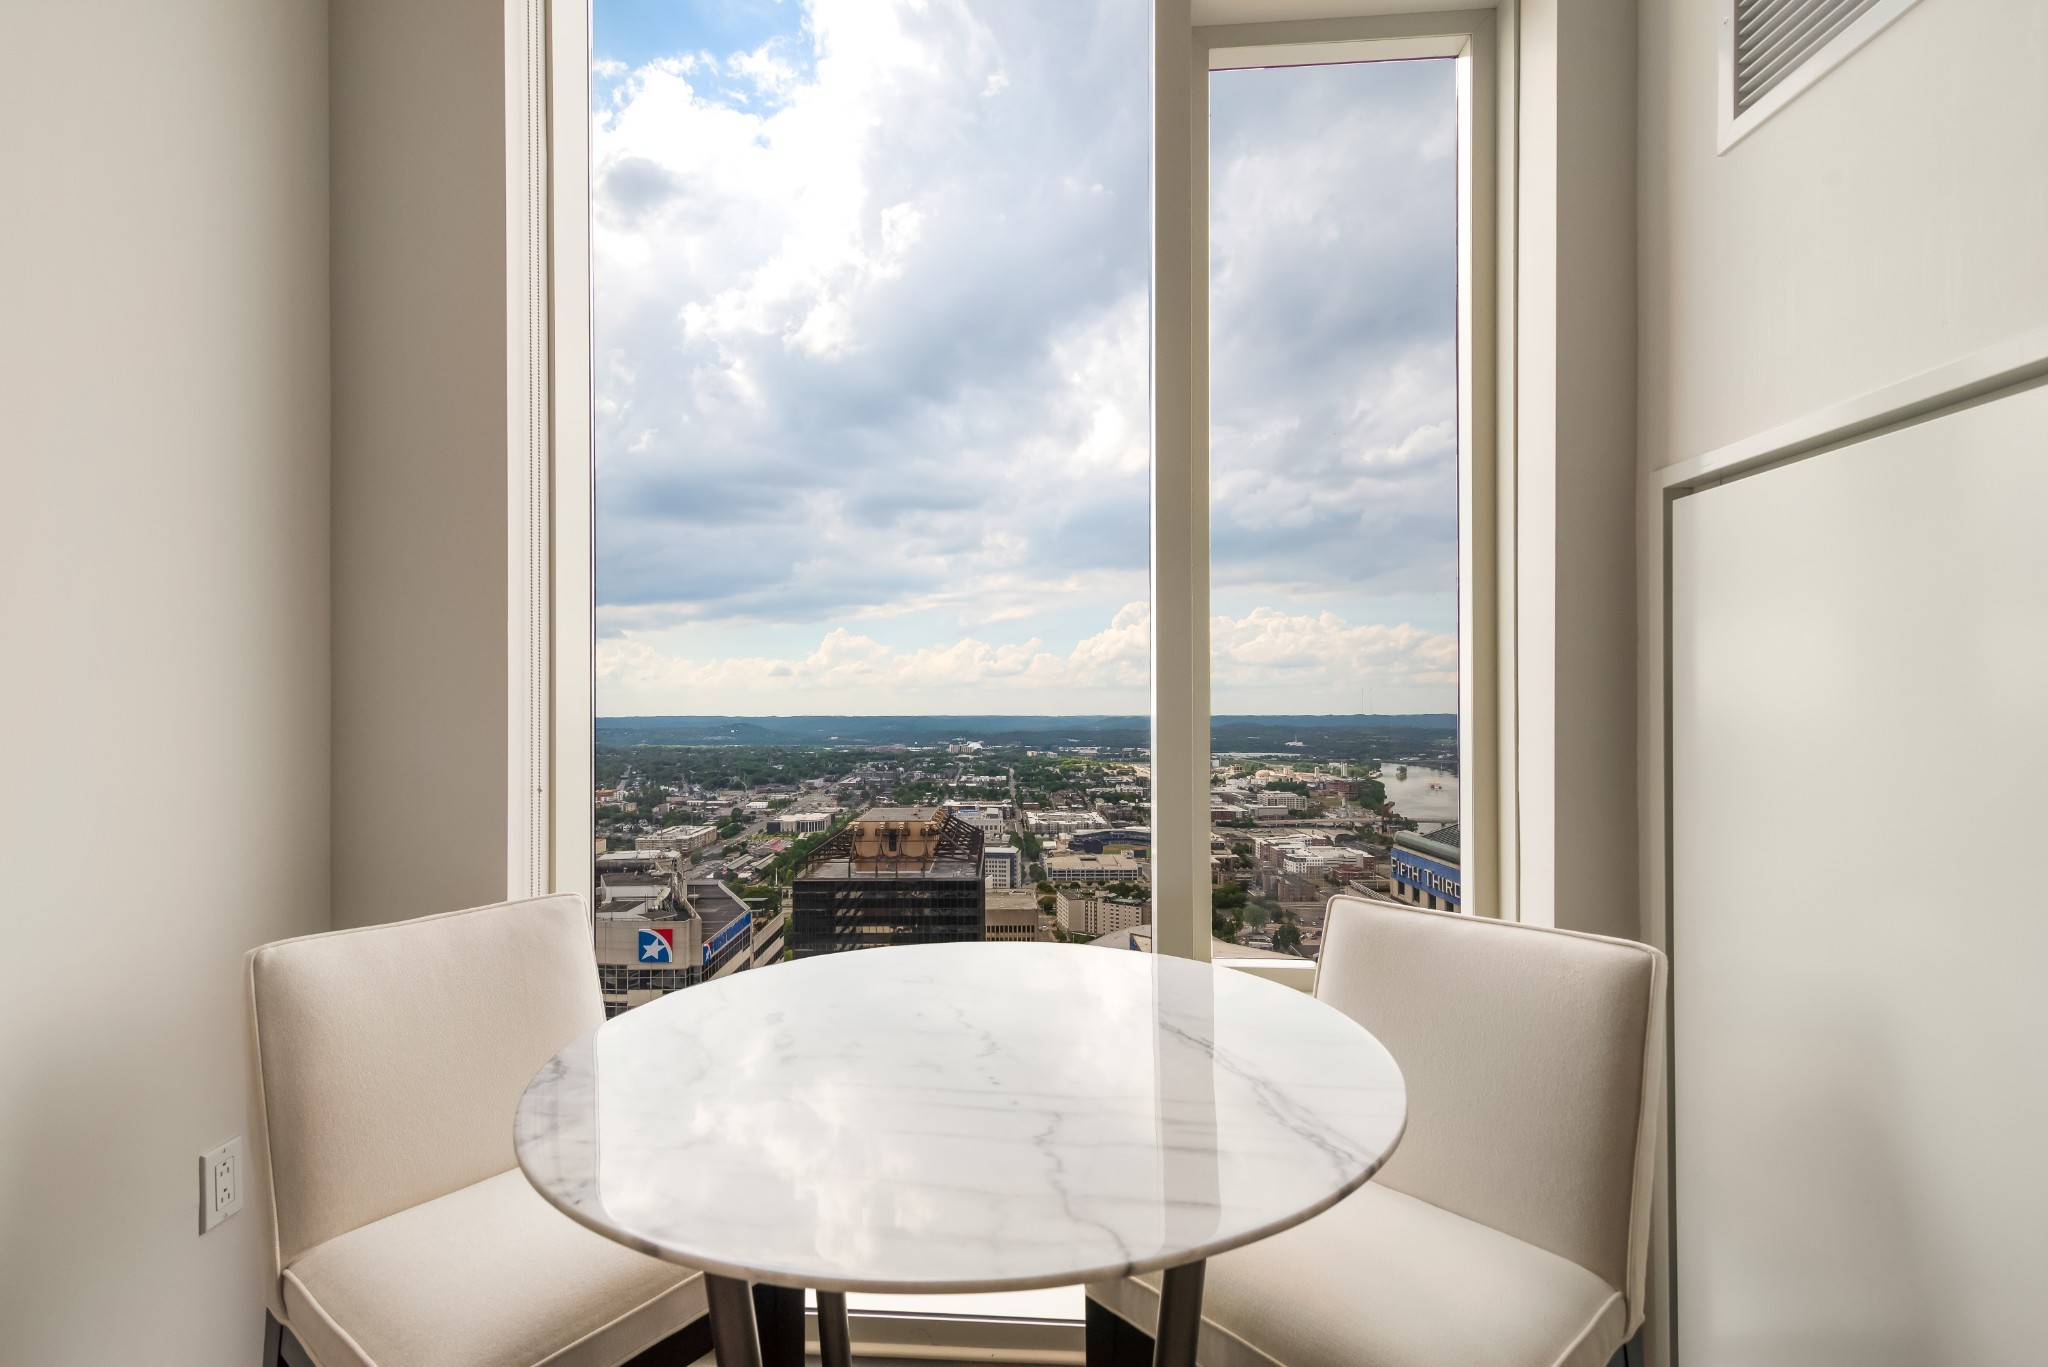 Luxury living beyond compare in Nashville's extraordinary 505 high-rise. Beautifully appointed. Enjoy incomparable wall-to-wall views of Nashville's iconic skyline and distant hilltops. Resort-style pool, cabanas, tennis, Technogym fitness center, dog park. Exclusive owners-only wine cellar, lounge, dining room and catering kitchen and fitness room. Located in the epicenter of all downtown activities, walk to music, theater, sports and restaurants.